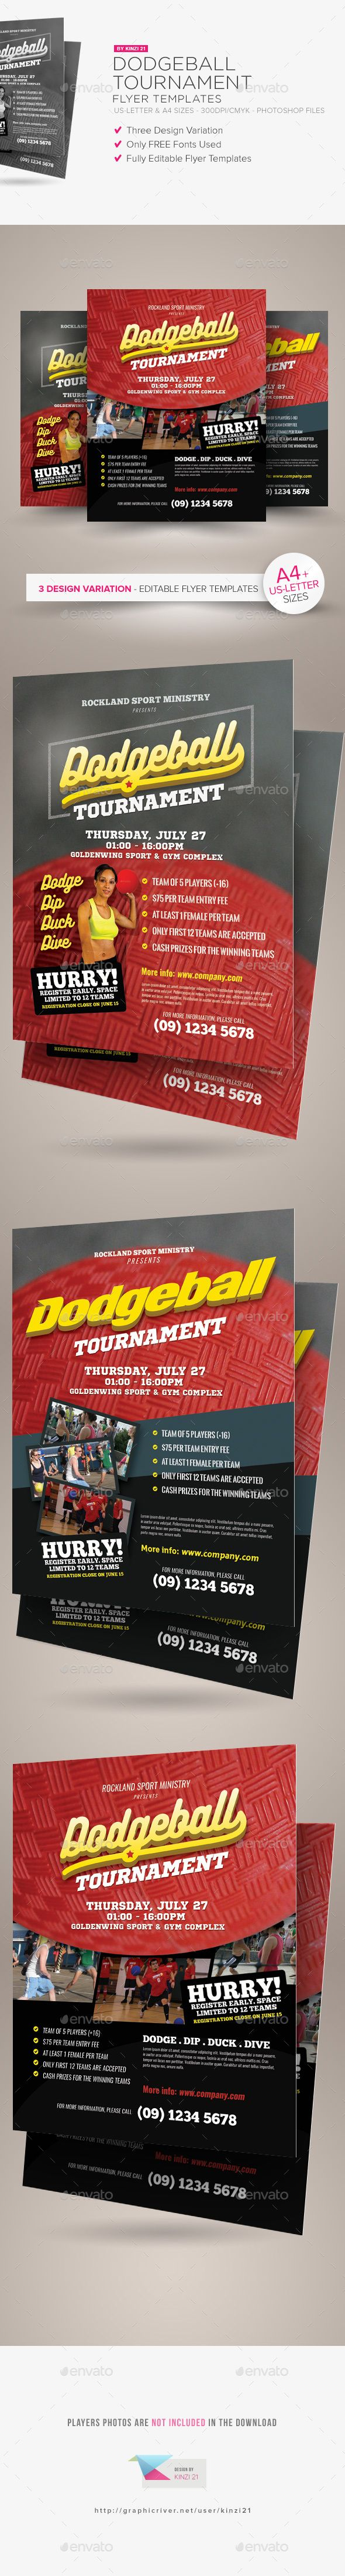 Dodgeball Tournament Flyer Templates | Flyer template ...